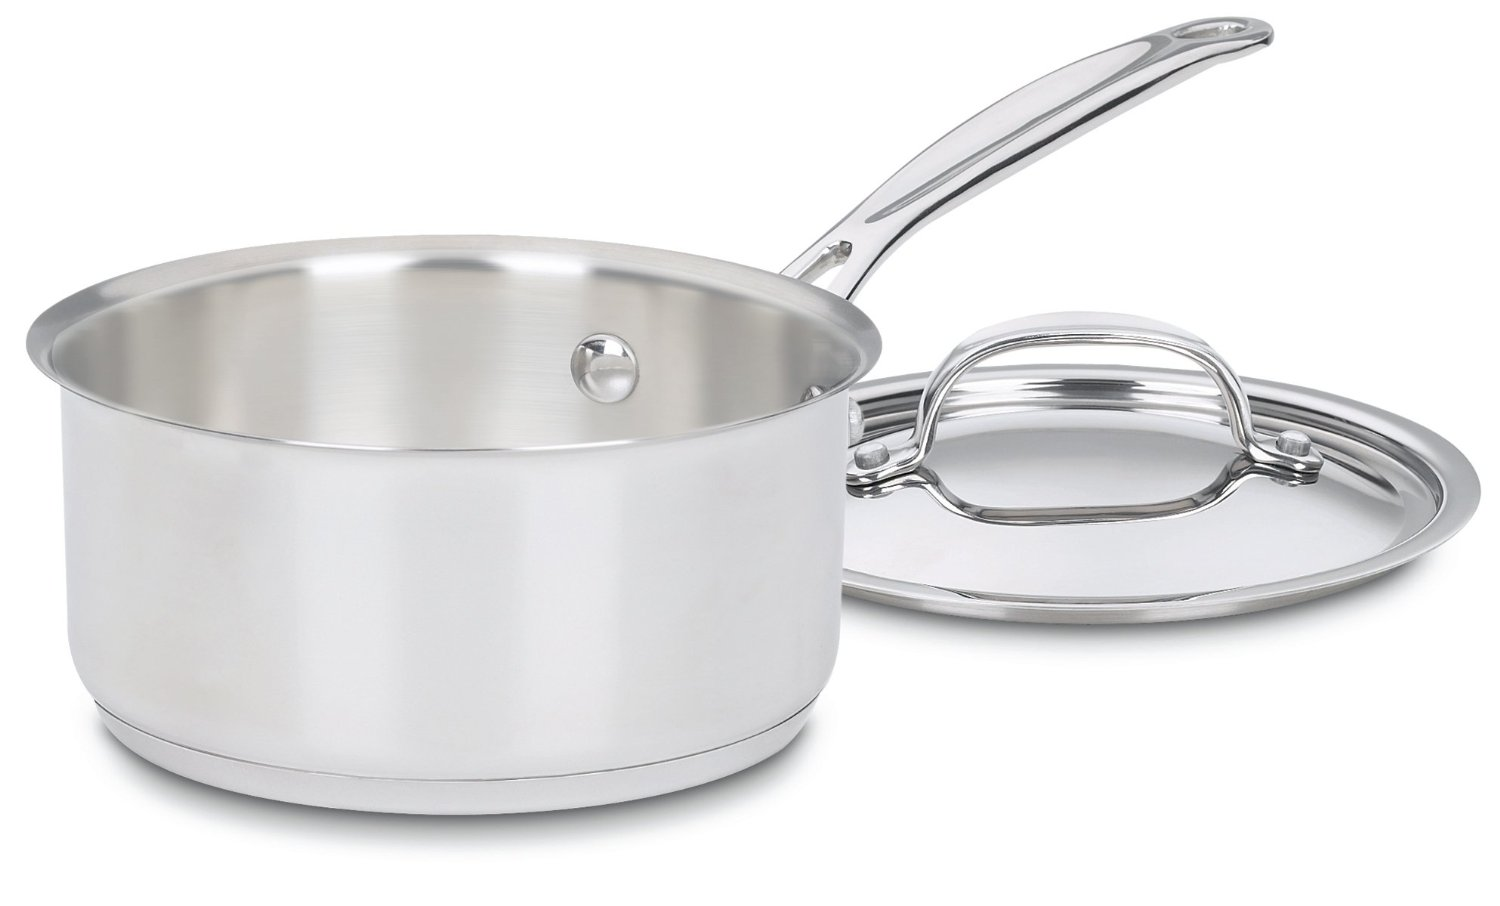 Cuisinart Cookware 1-1/2-Quart Saucepan with Cover